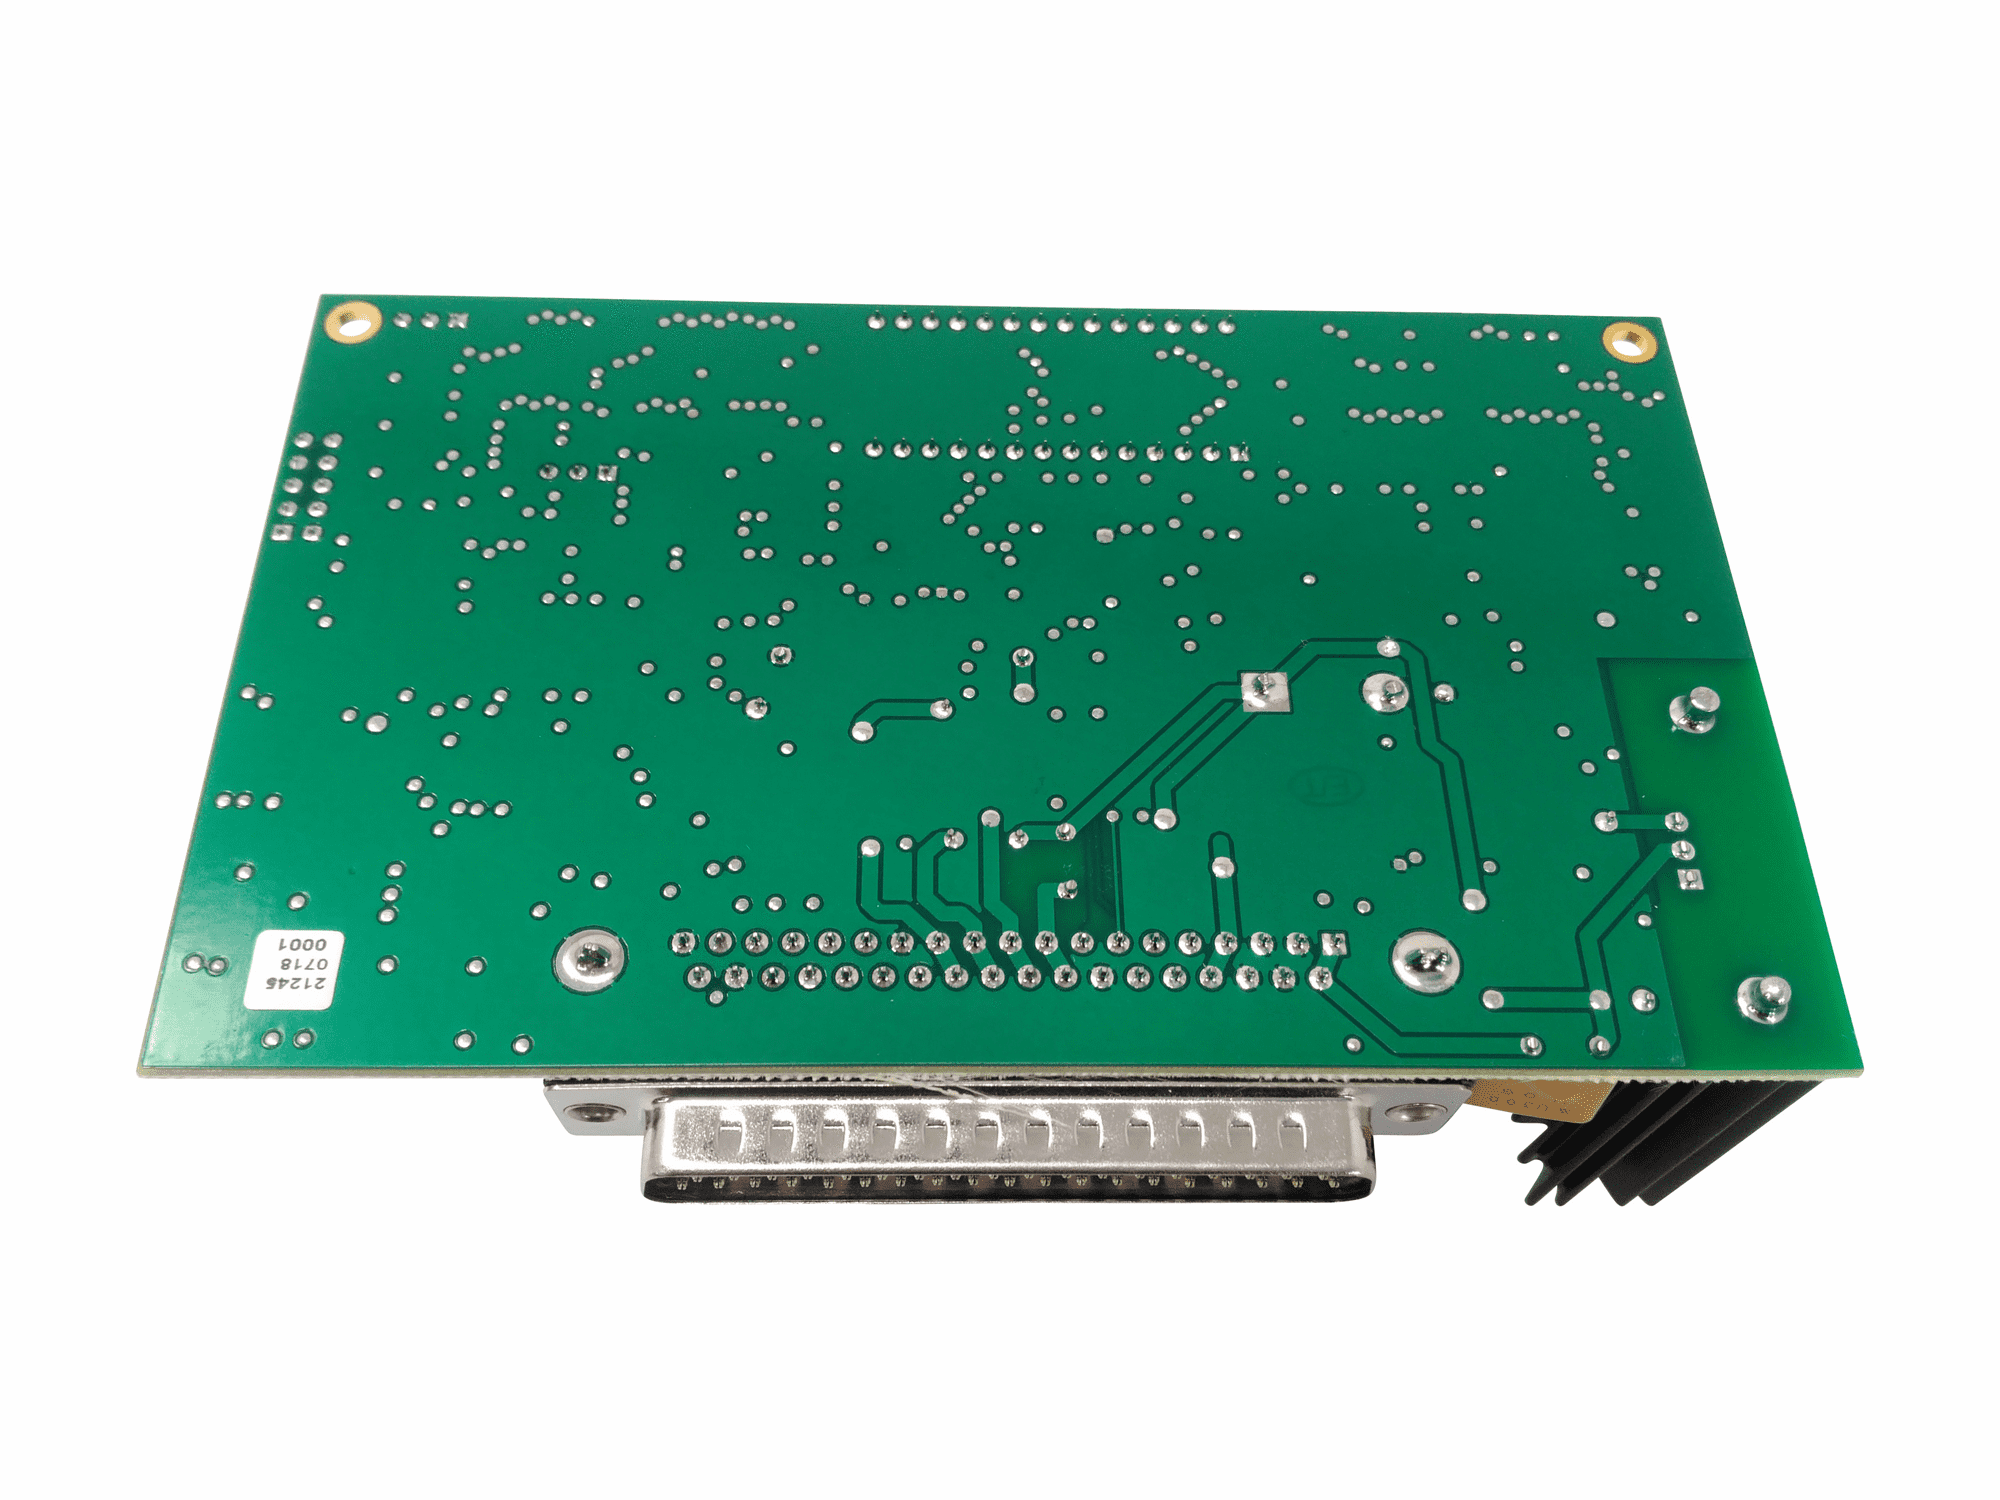 00-0035-0206 | Thelin Parlour Control Board For Models 2006-2009, 00-0035-0206